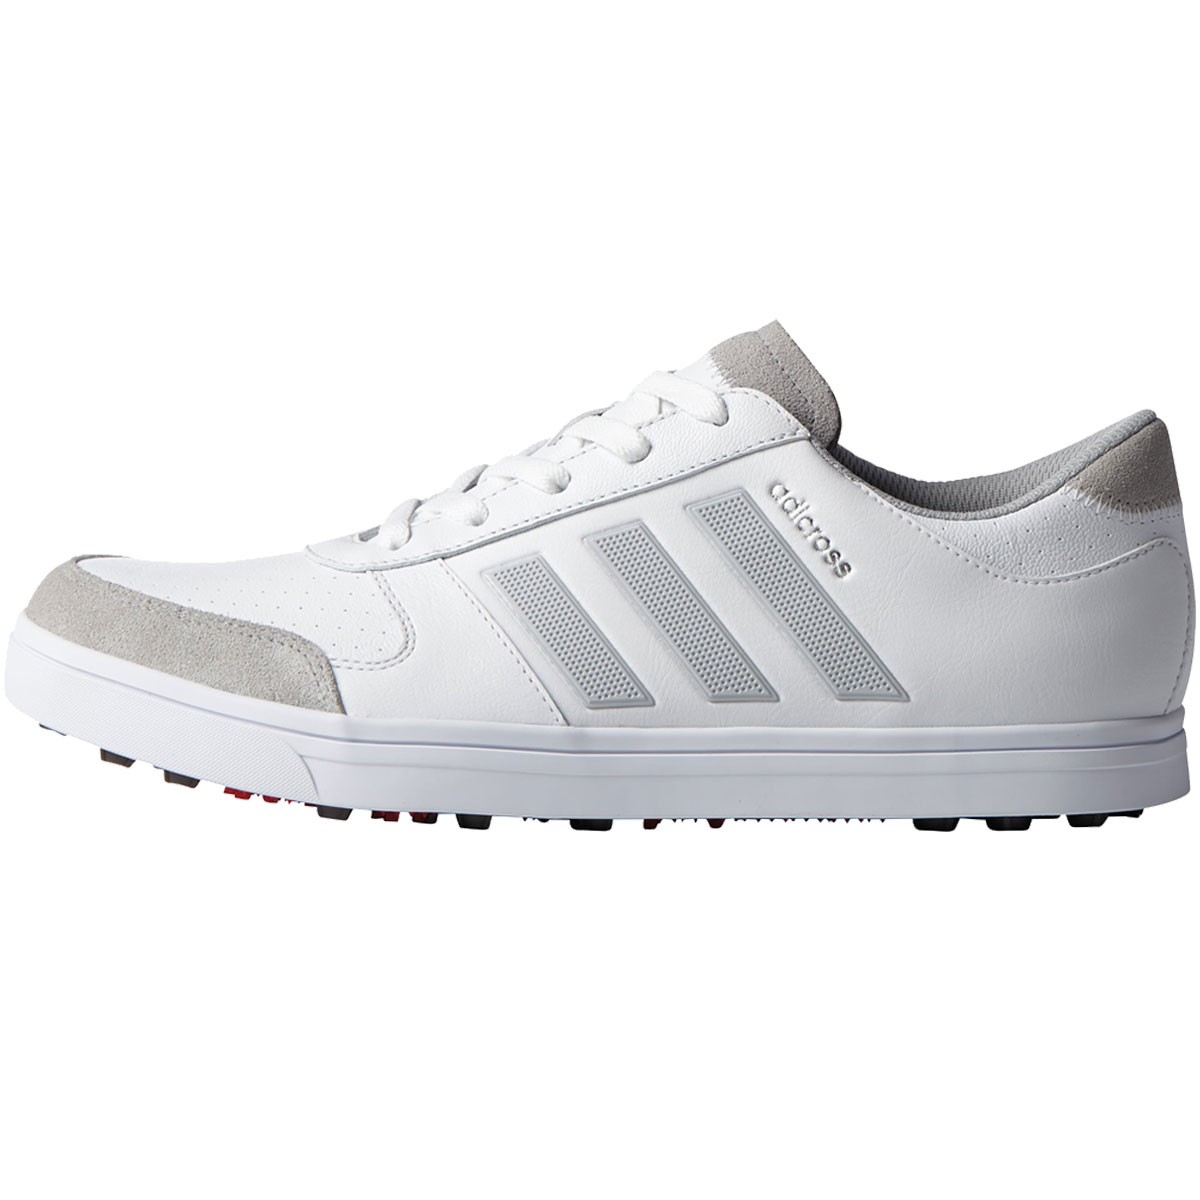 adidas golf 2016 mens adicross gripmore 2 waterproof